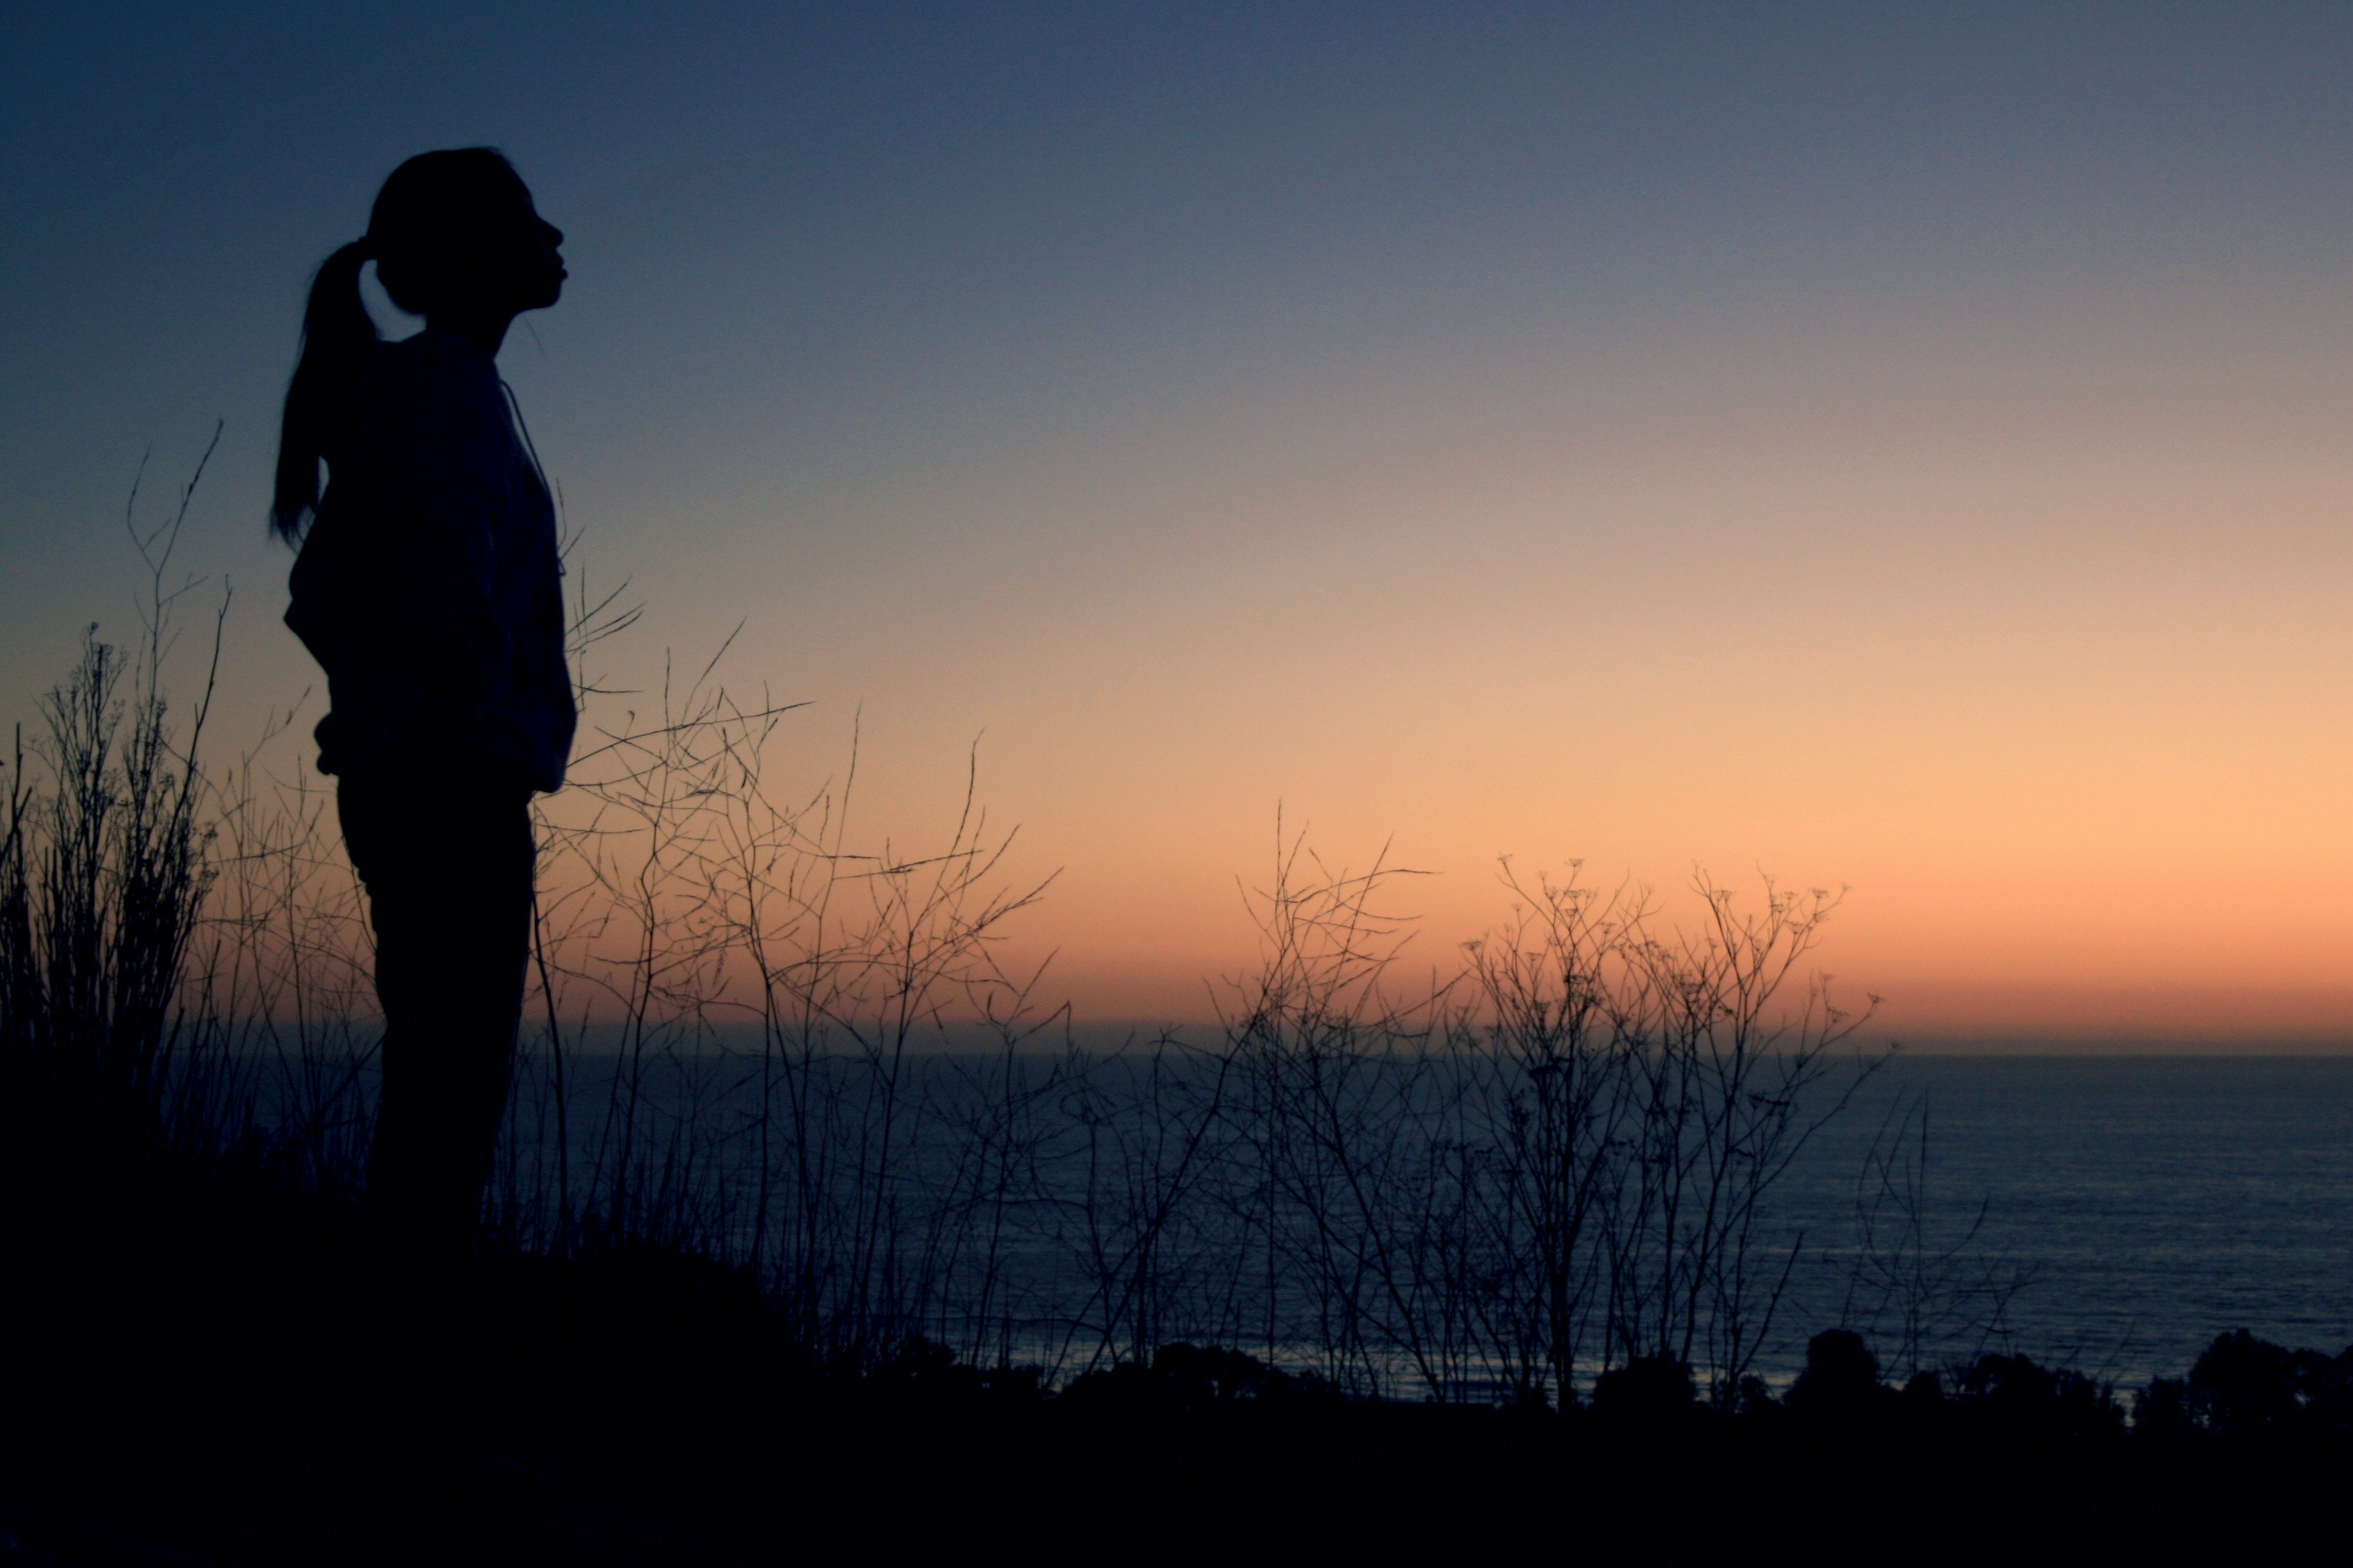 What the joyous solitude of early hermits can teach us about being alone